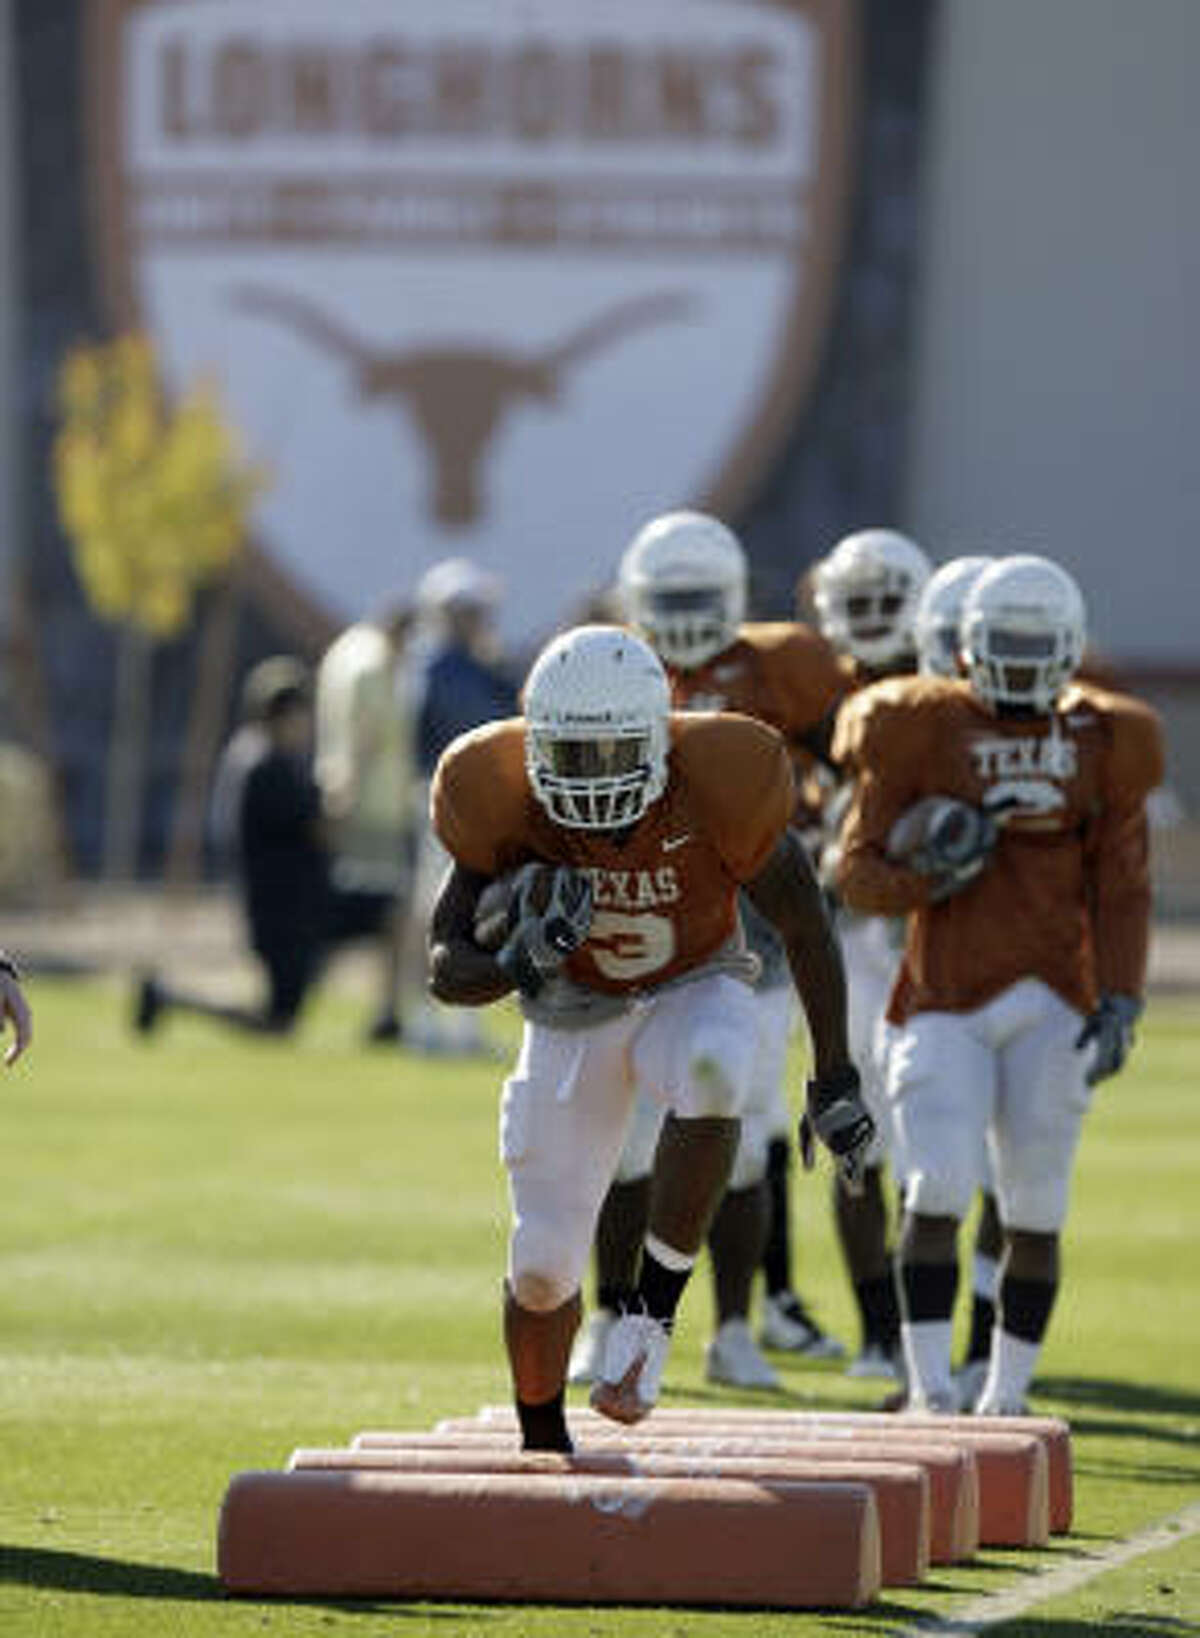 Texas coach Mack Brown has been pleased with the Longhorns' preparations as they try to send seniors like running back Chris Ogbonnaya, front, out winners in their college finale.